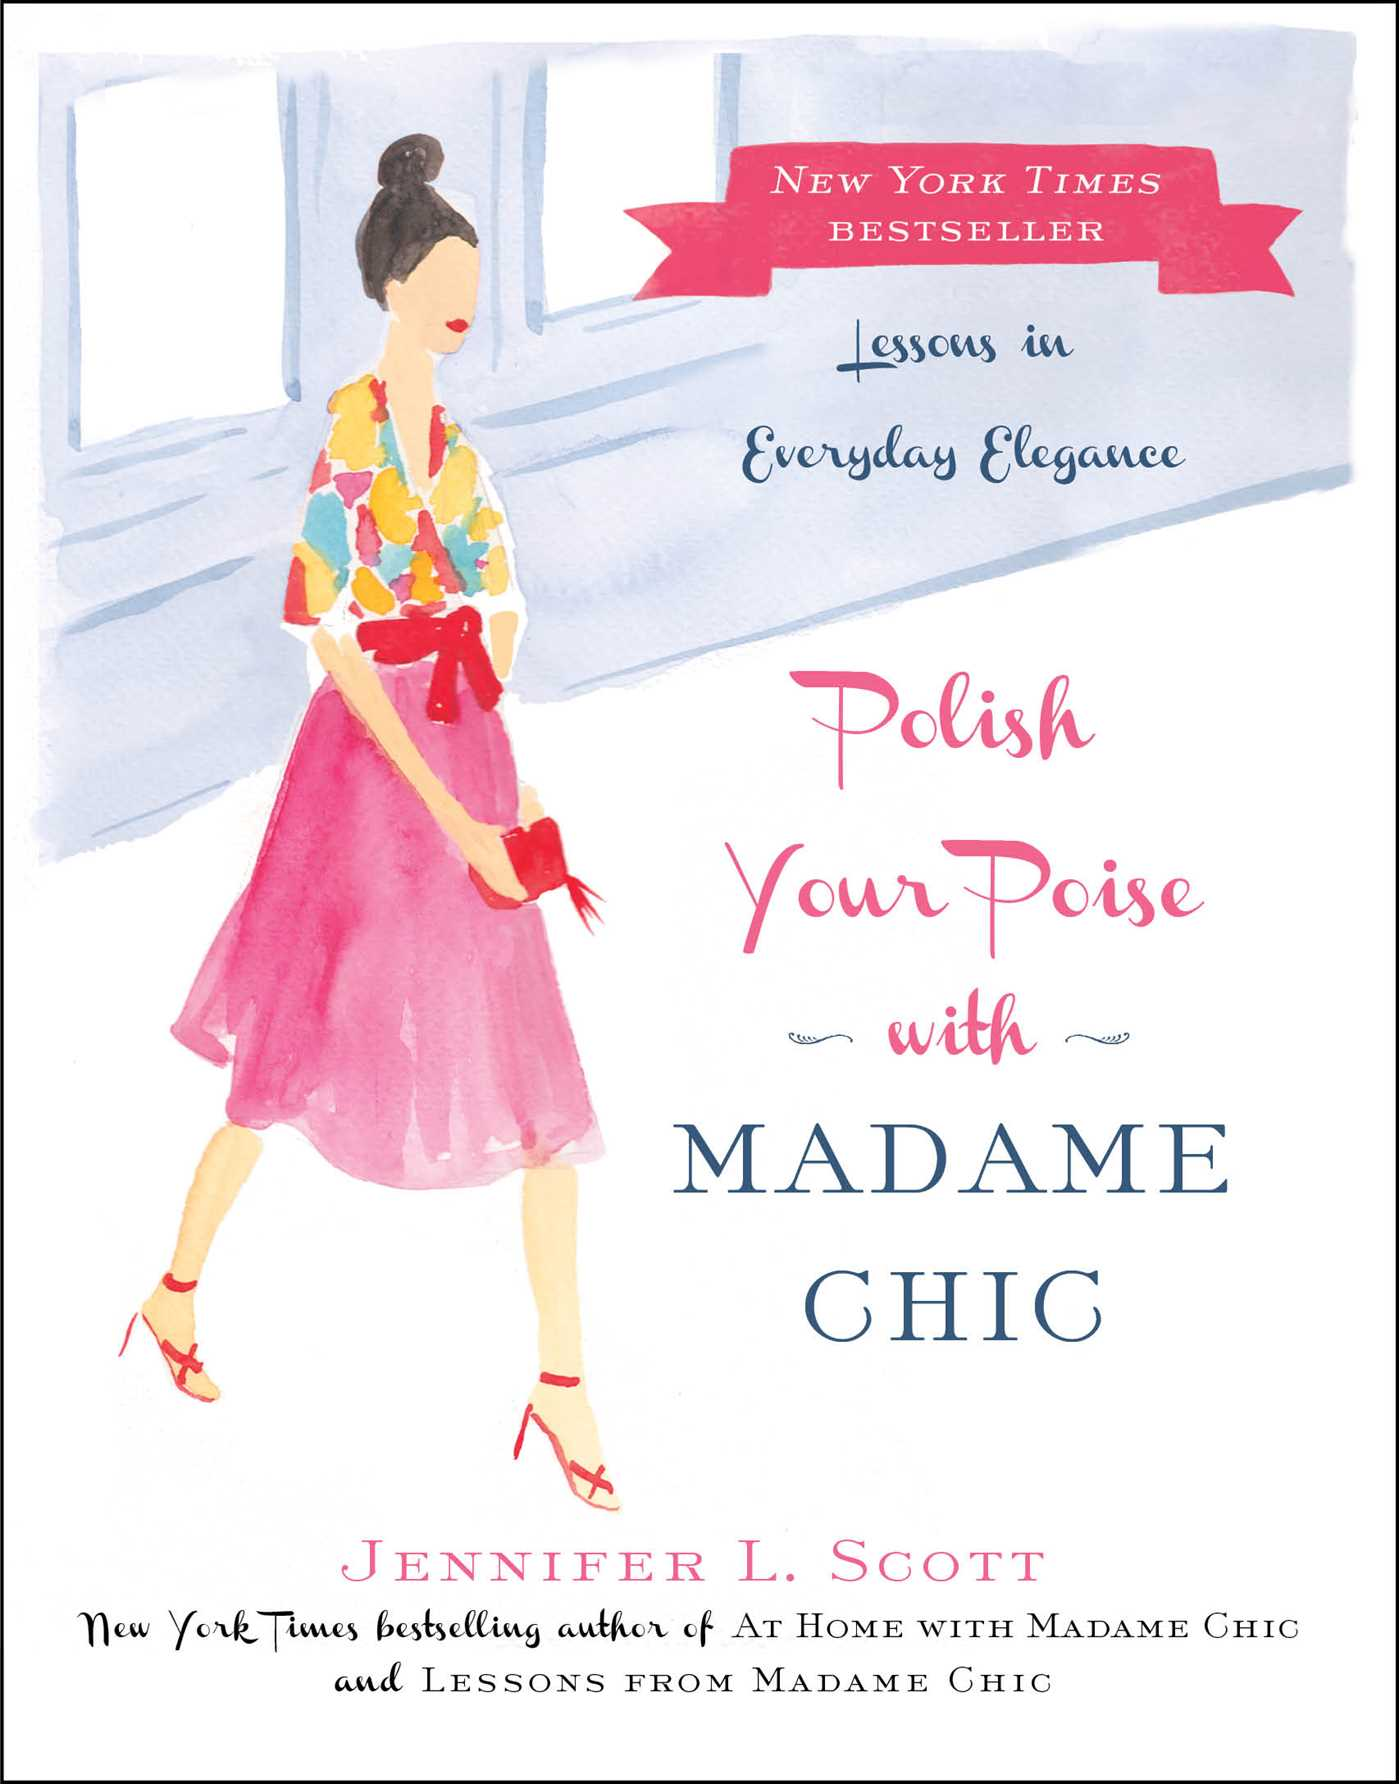 Polish your poise with madame chic 9781501118739 hr